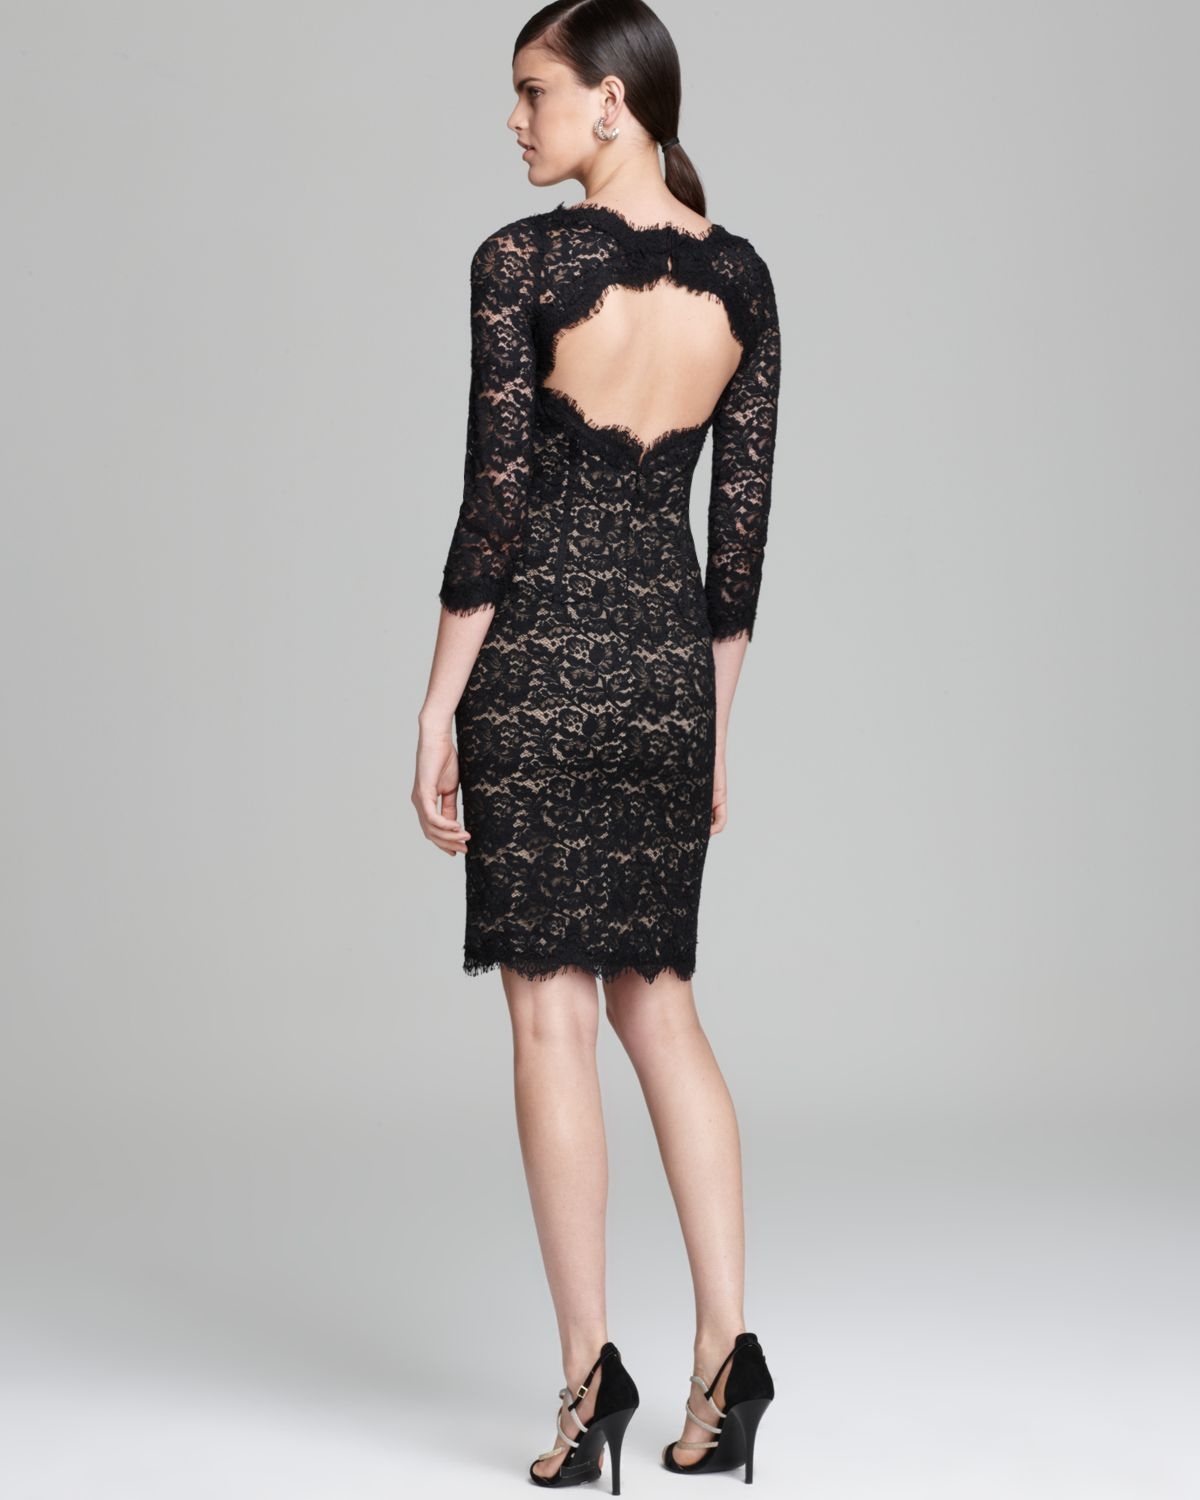 Lyst - Ml monique lhuillier Lace Dress Three Quarter Sleeve with ...